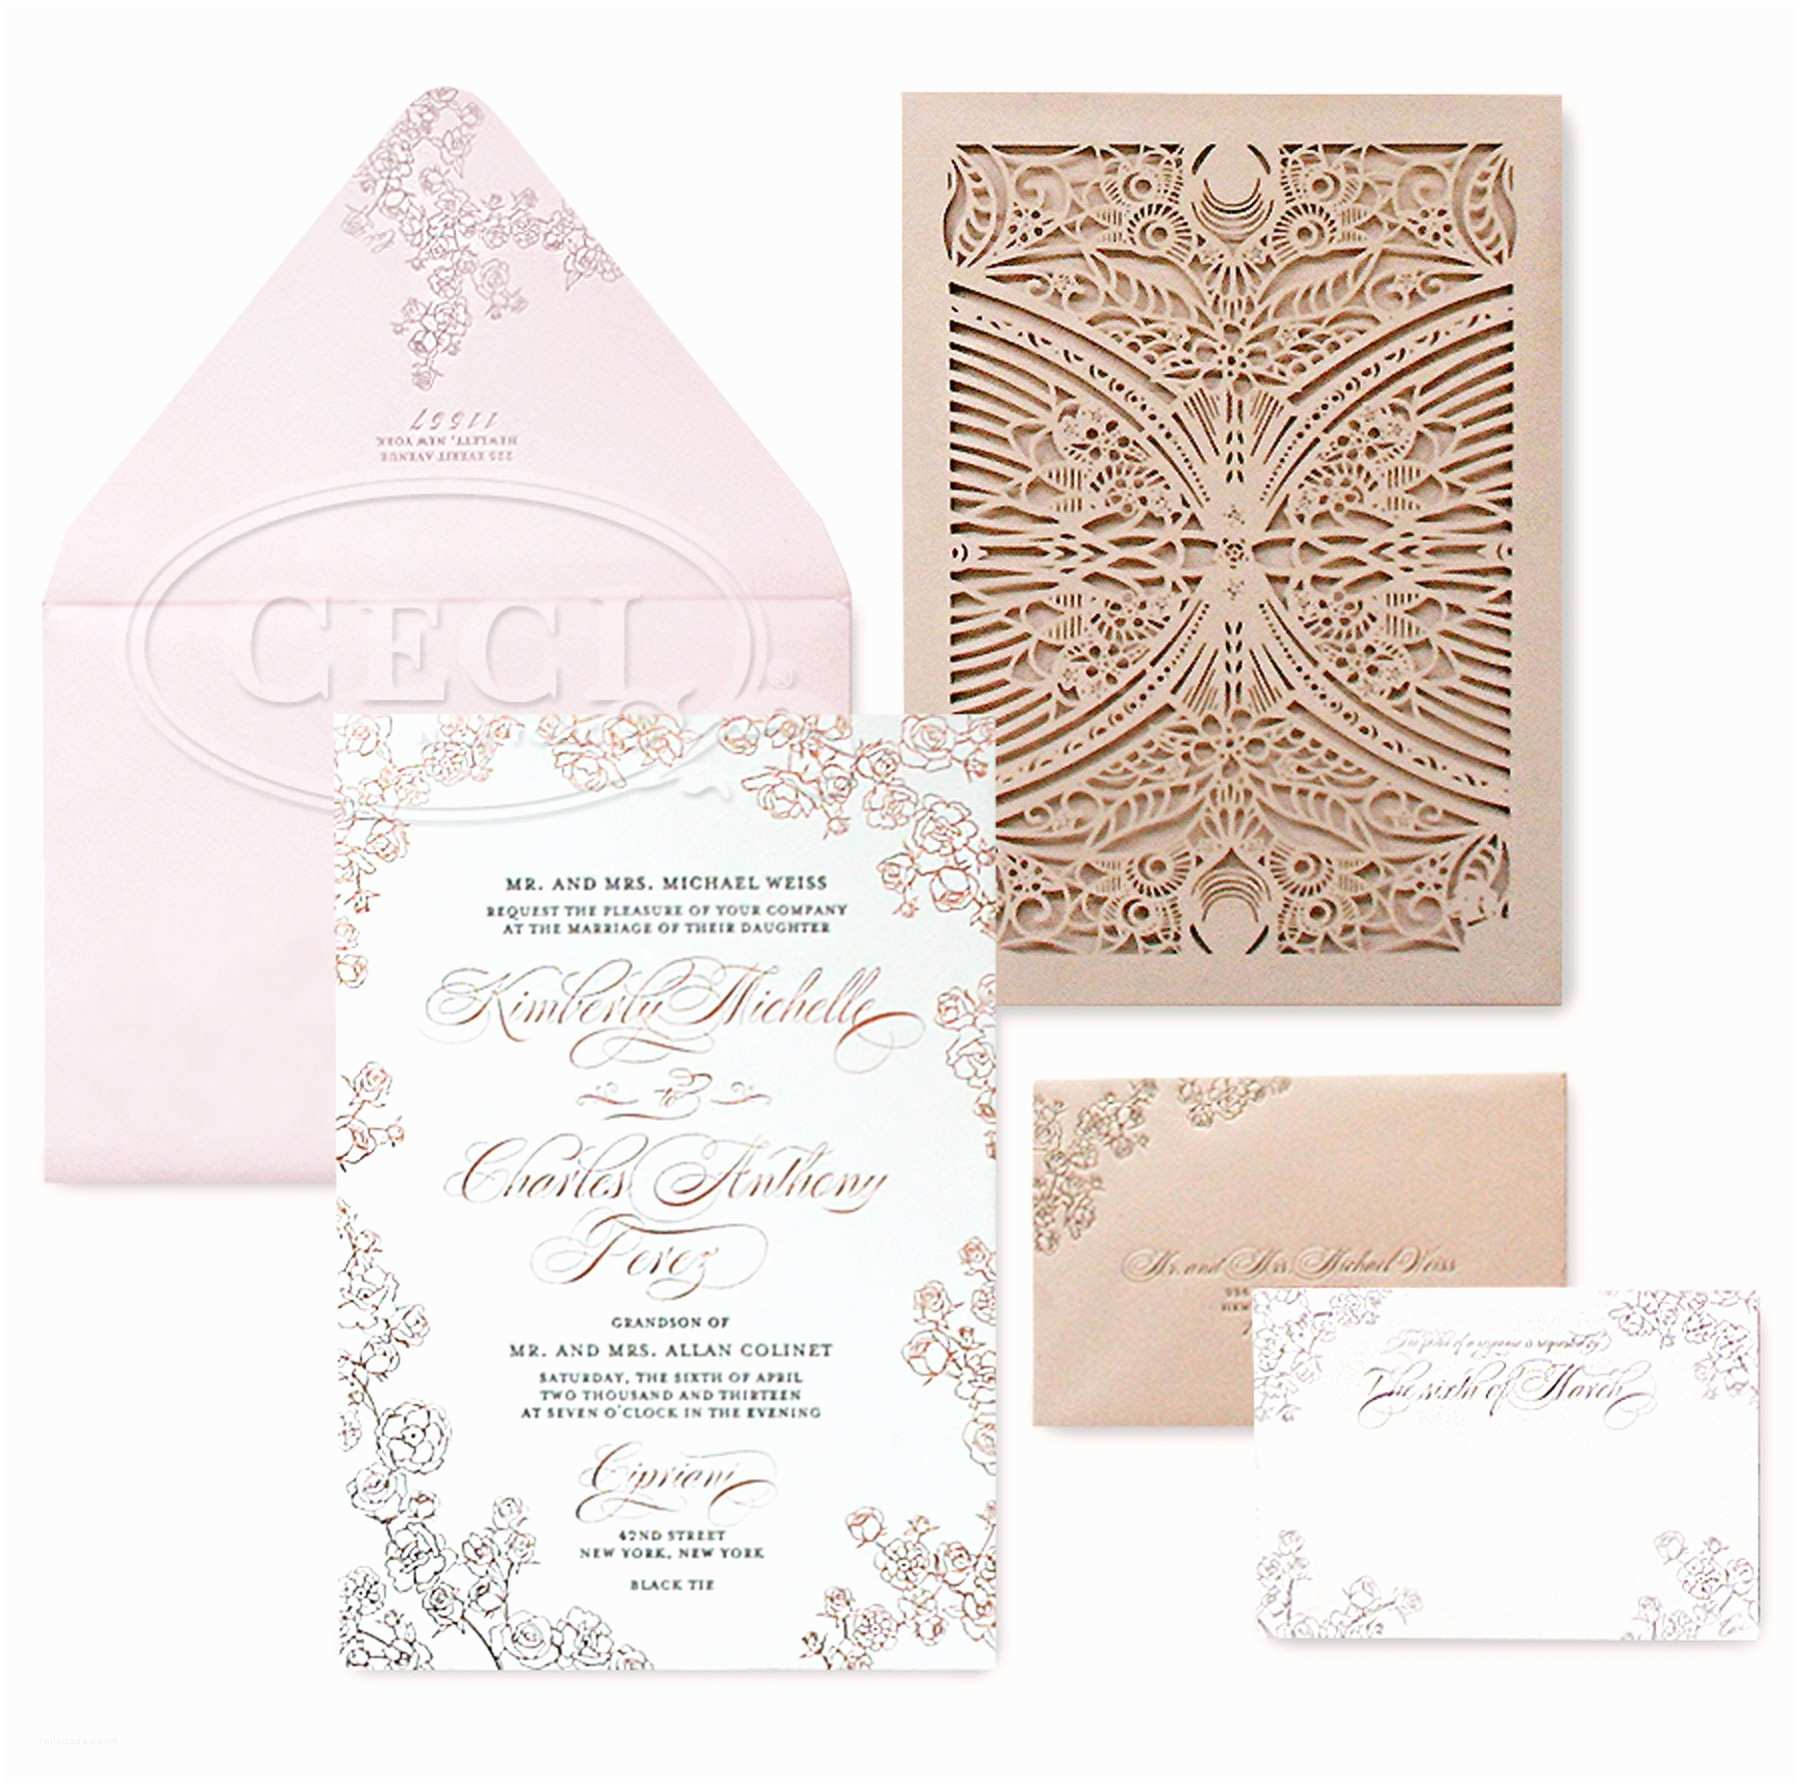 Blush and Gold Wedding Invitations V180 Our Muse Blush Pink Cipriani Wedding Kimberly